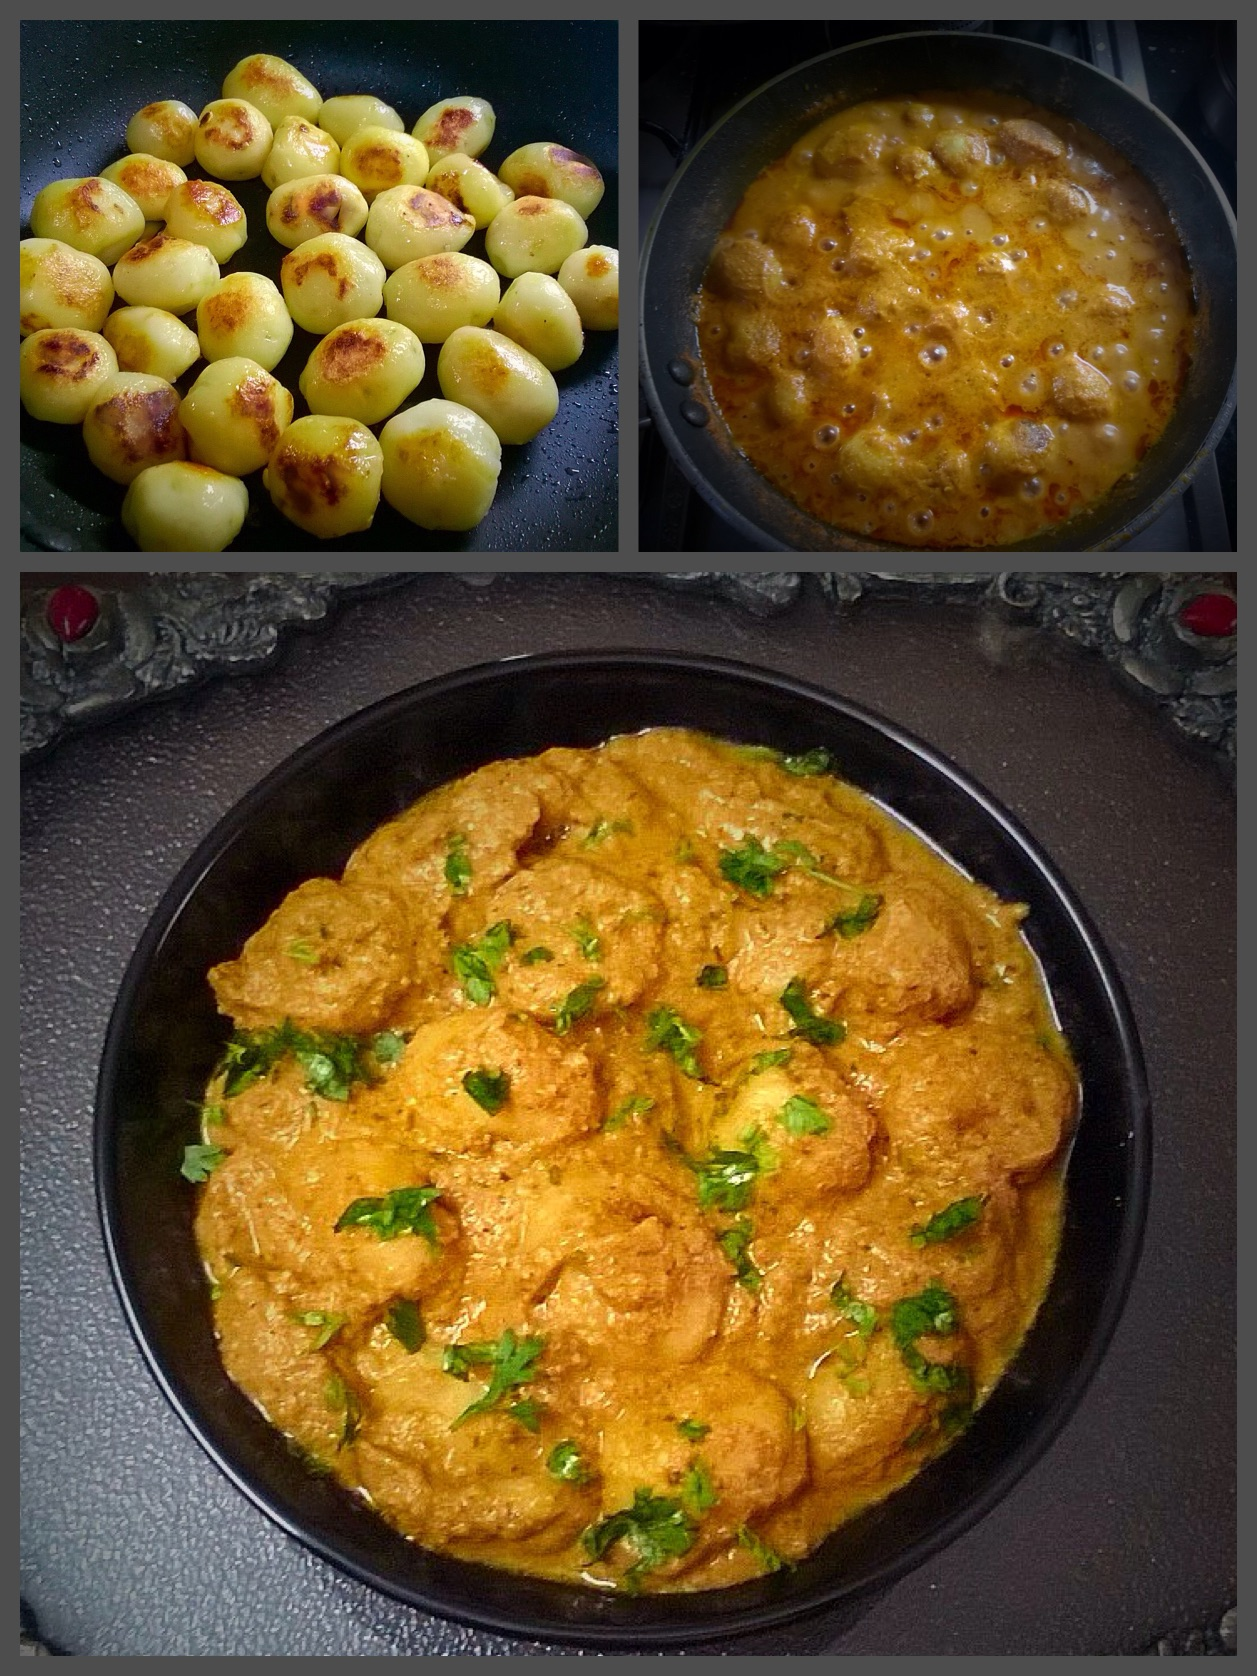 Dum aloo spicy baby potatoes without onion and garlic recipe dum aloo spicy baby potatoes without onion and garlic recipe forumfinder Choice Image